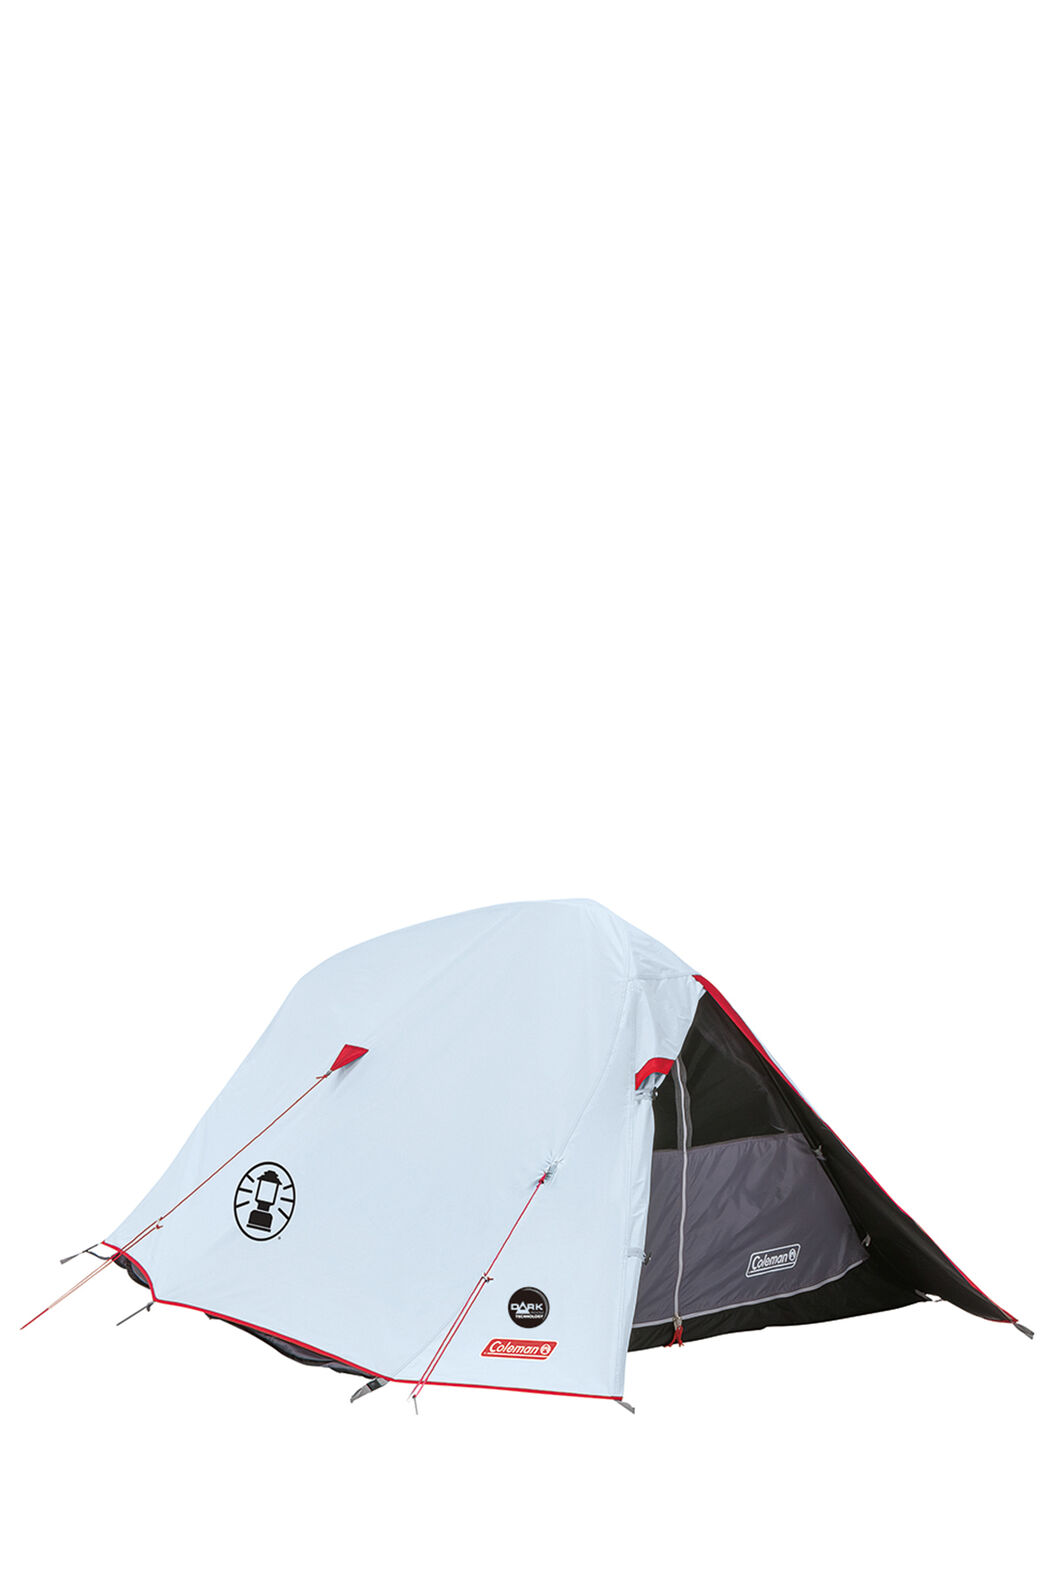 Coleman Pop Up Darkroom Dome Tent 2 Person, None, hi-res